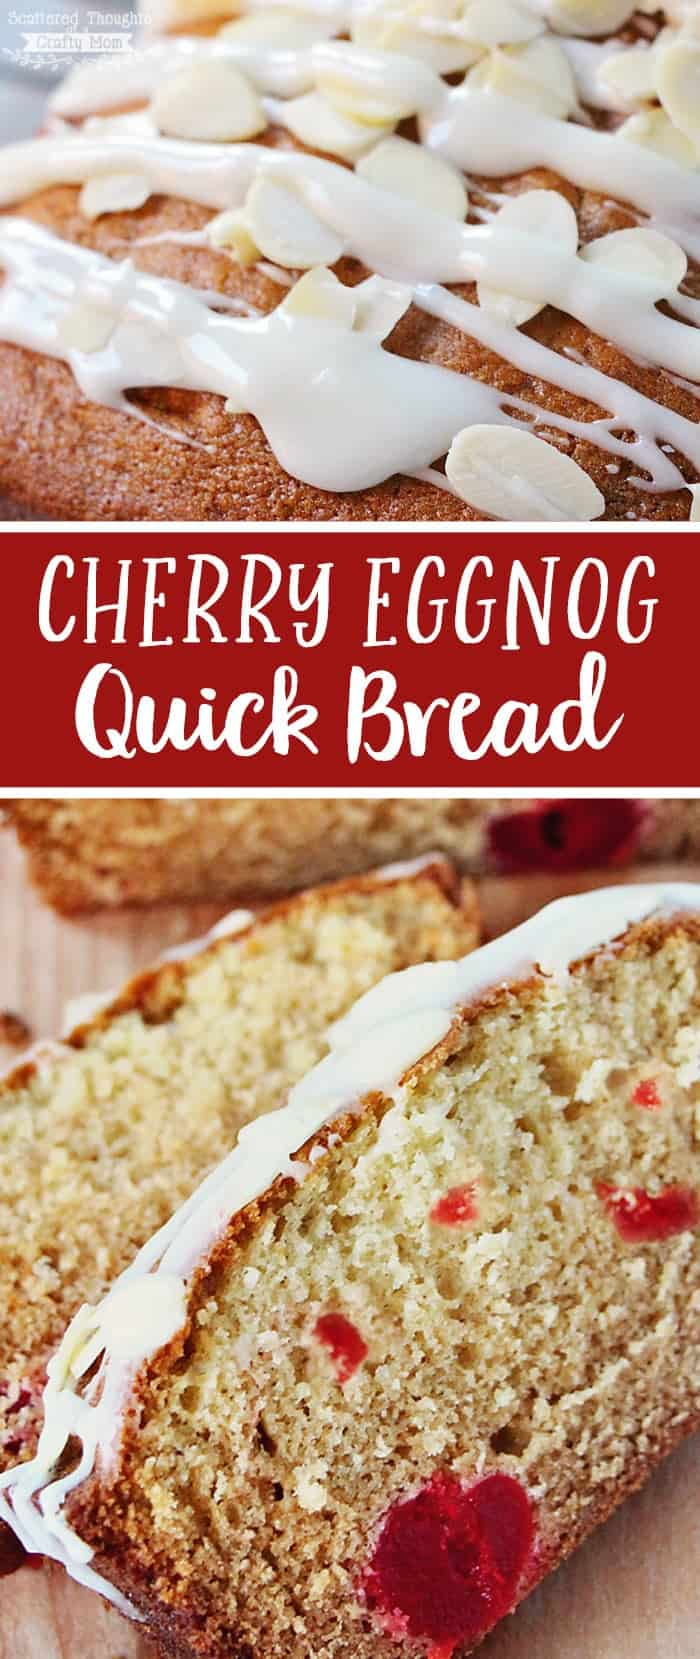 This Cherry Eggnog Quick Bread Recipe combines the classically delicious holiday flavors of cherry and eggnog in an easy to make quick bread recipe.